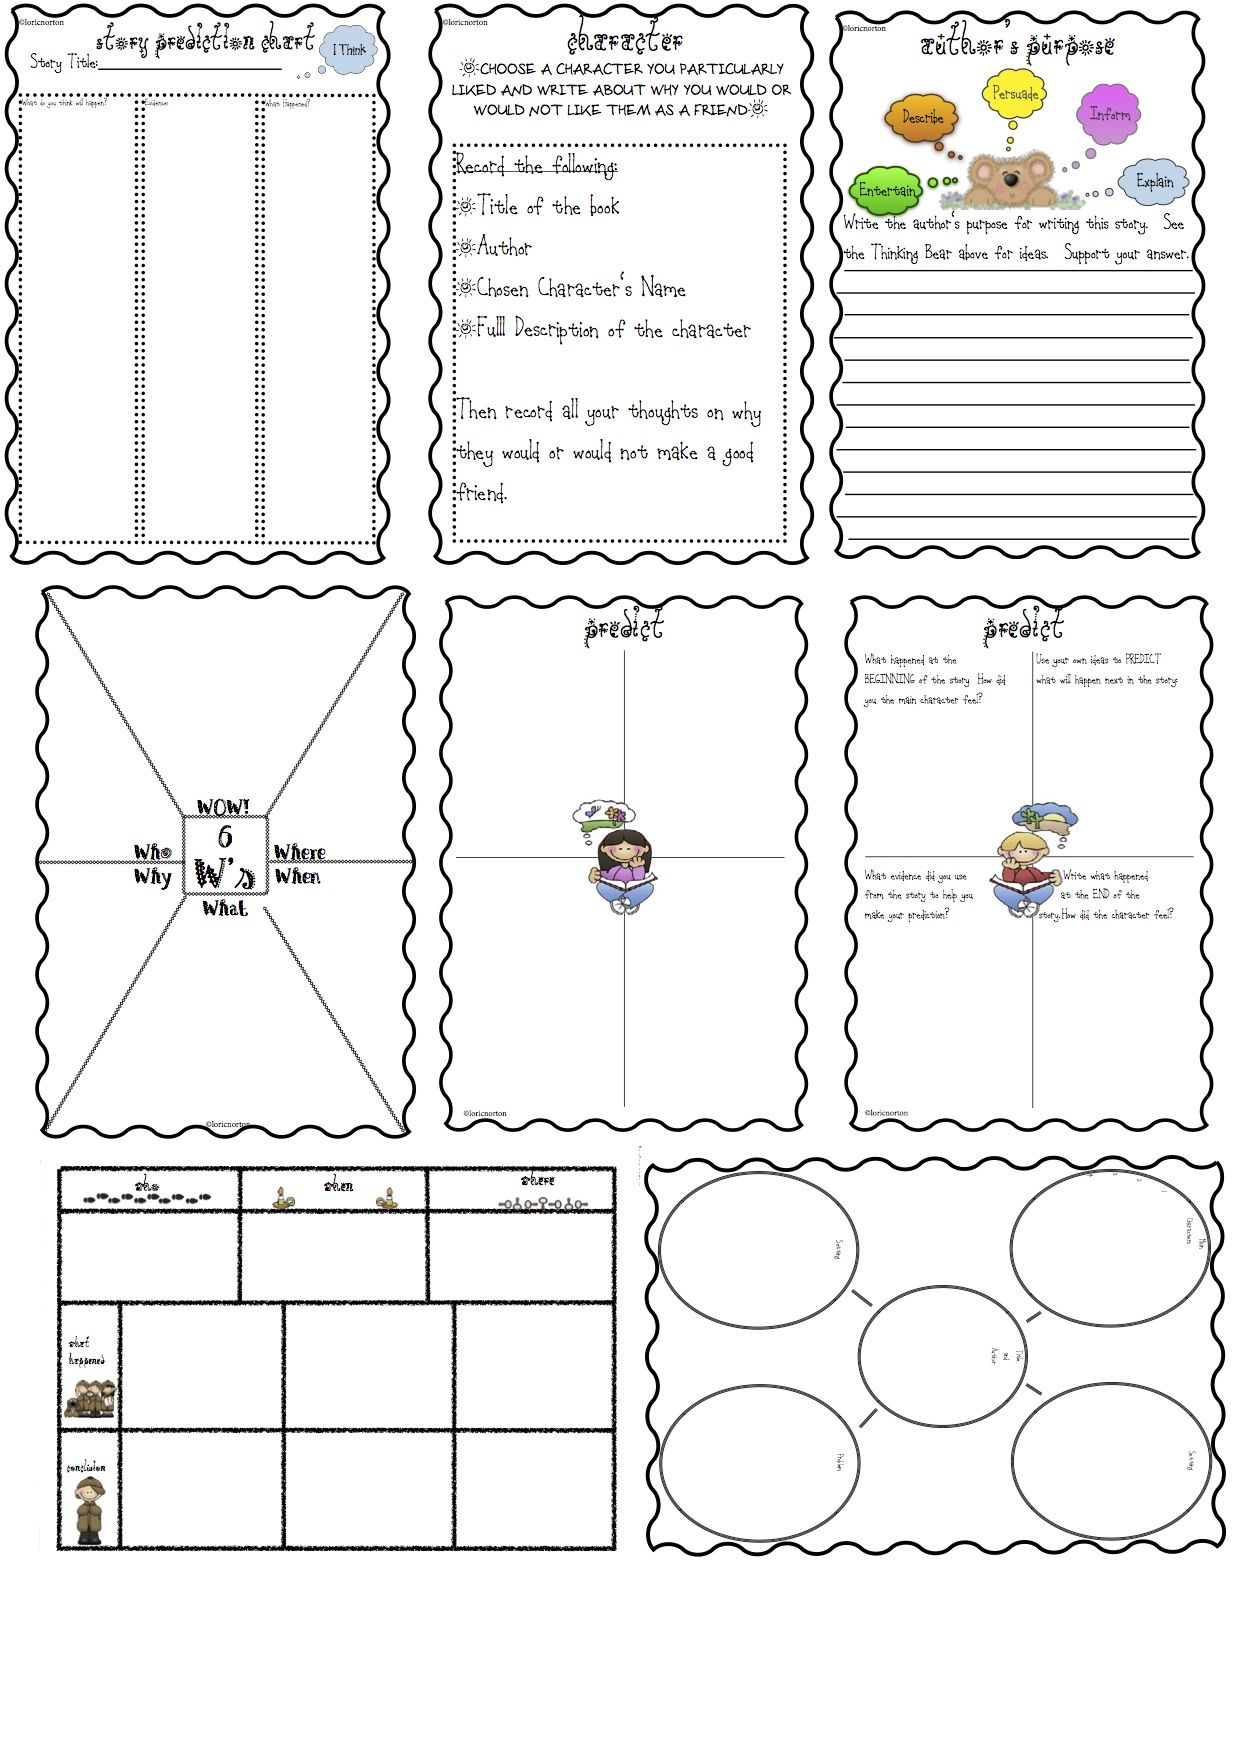 Worksheets Guided Reading Worksheets you can use these worksheets as a follow up activity after guided or reciprocal reading or